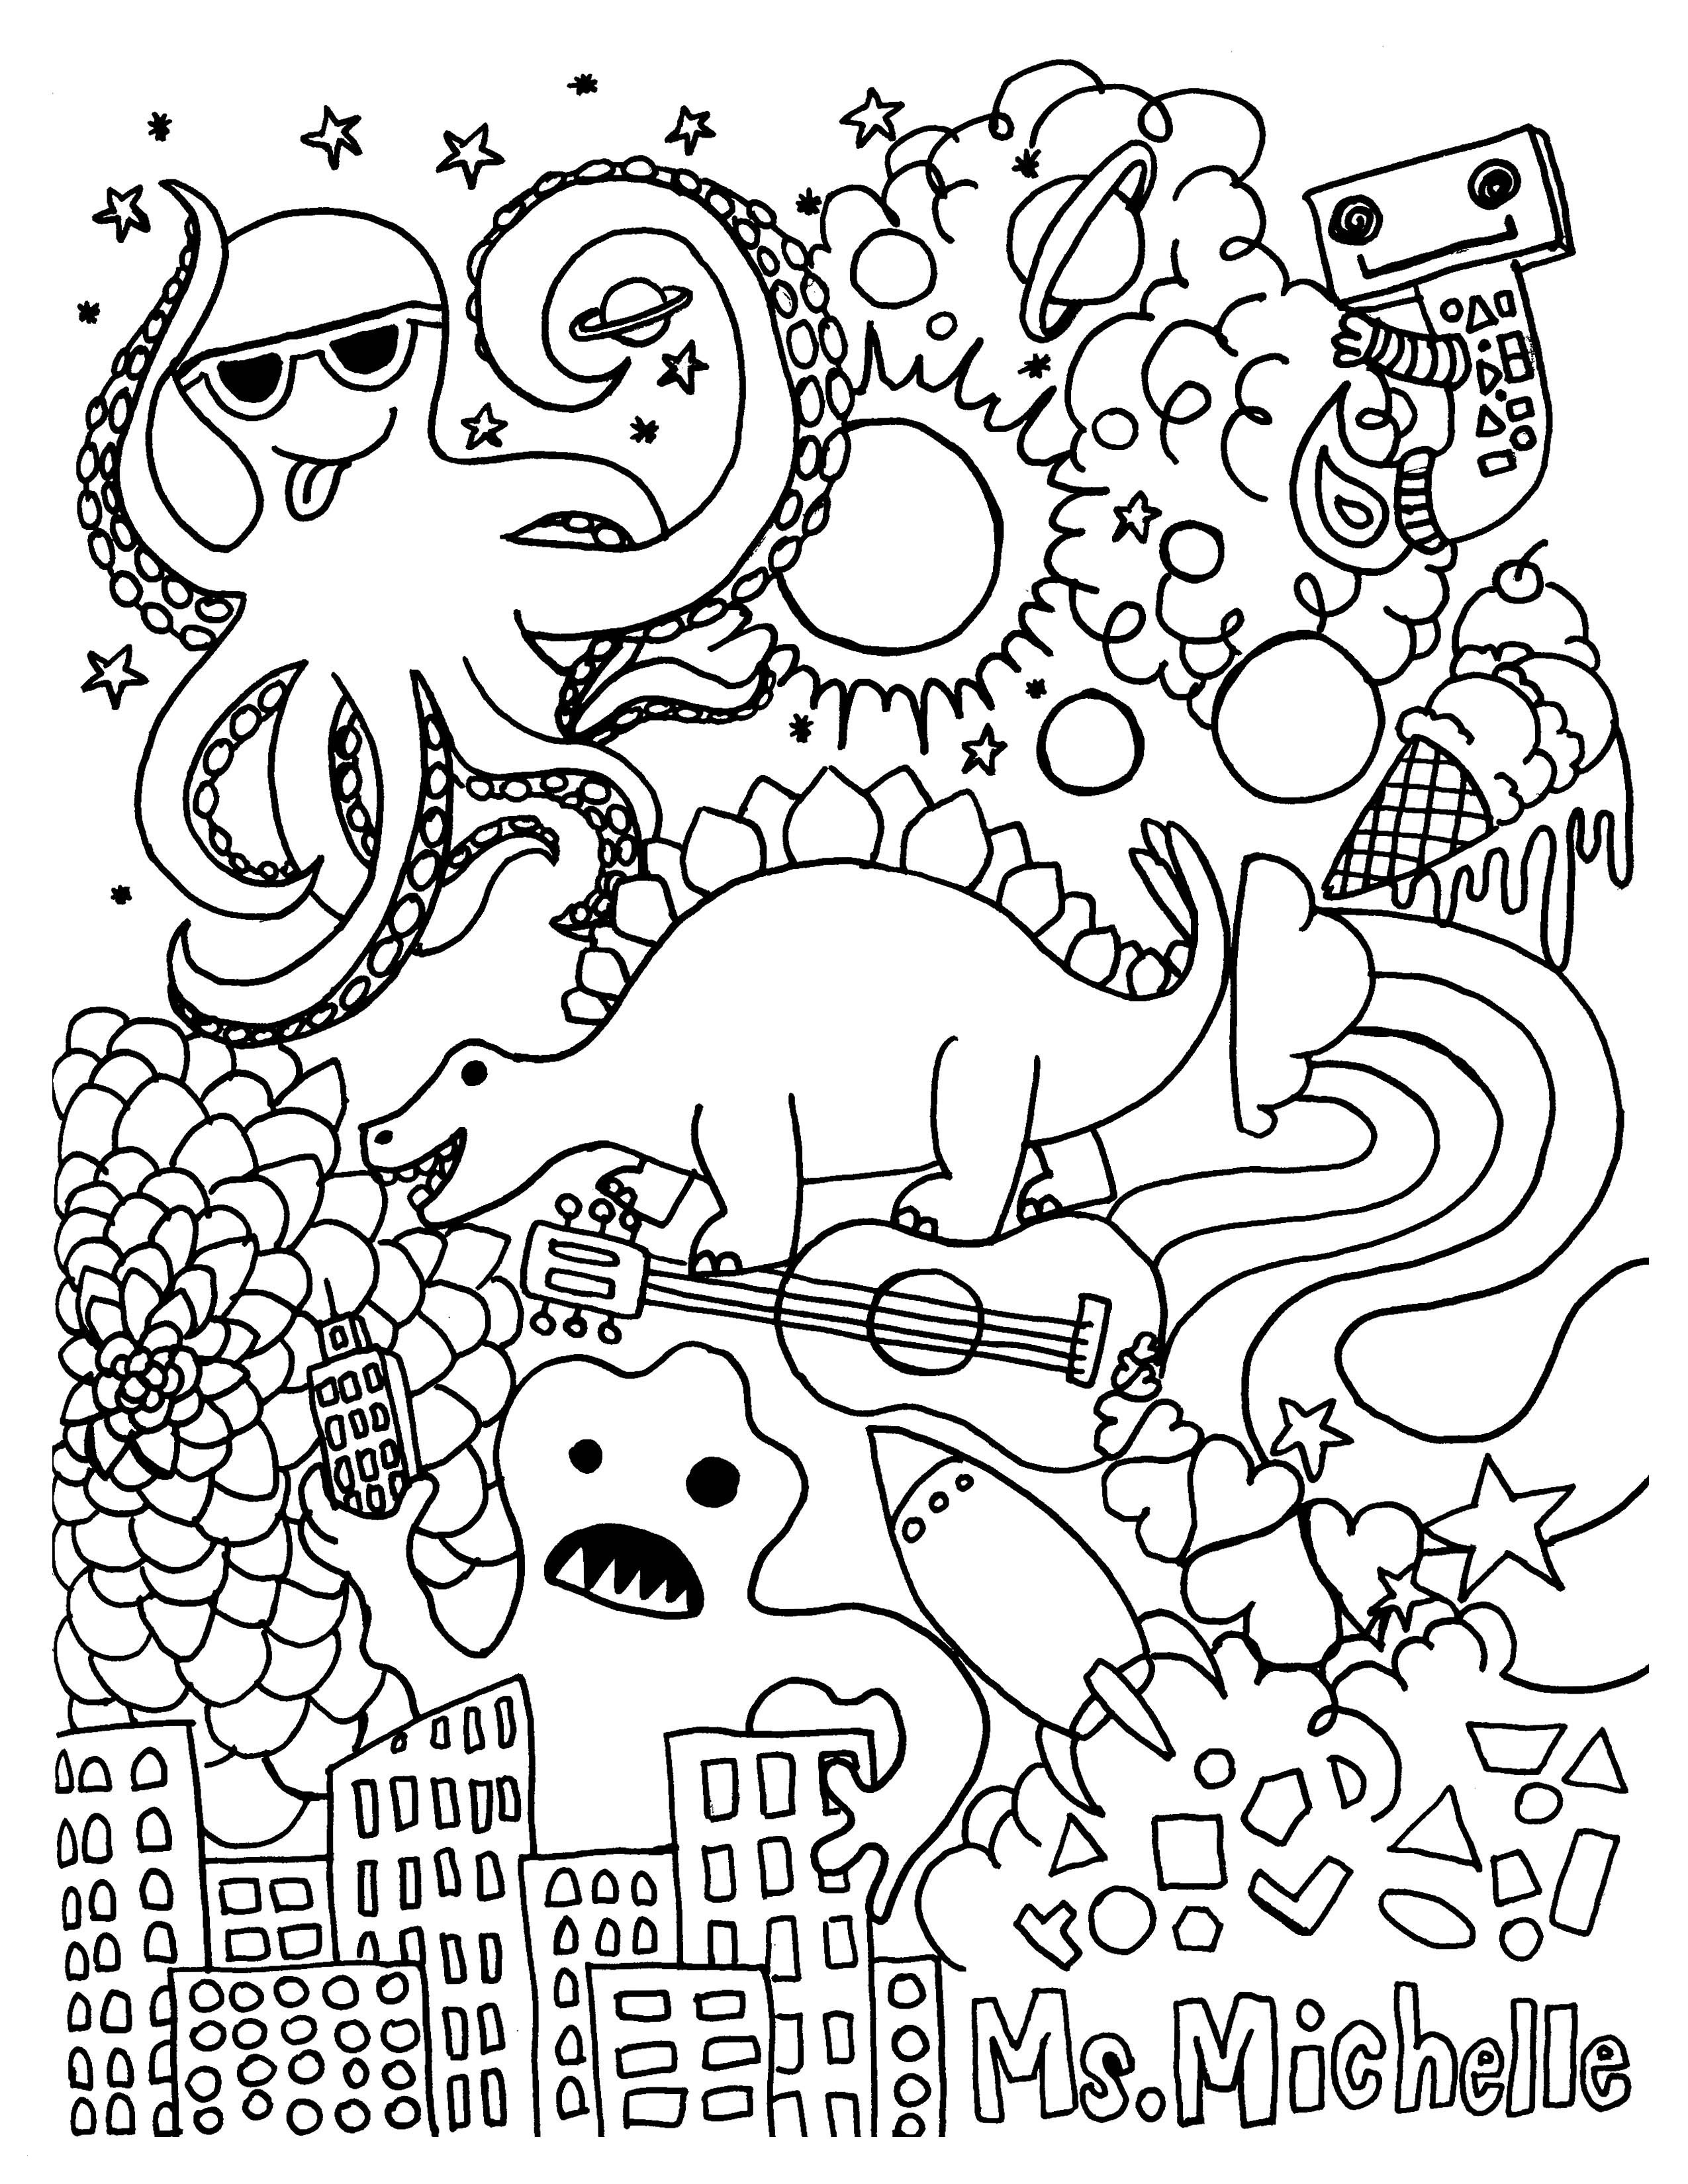 Coloring Pages Family  to Print 1a - Save it to your computer